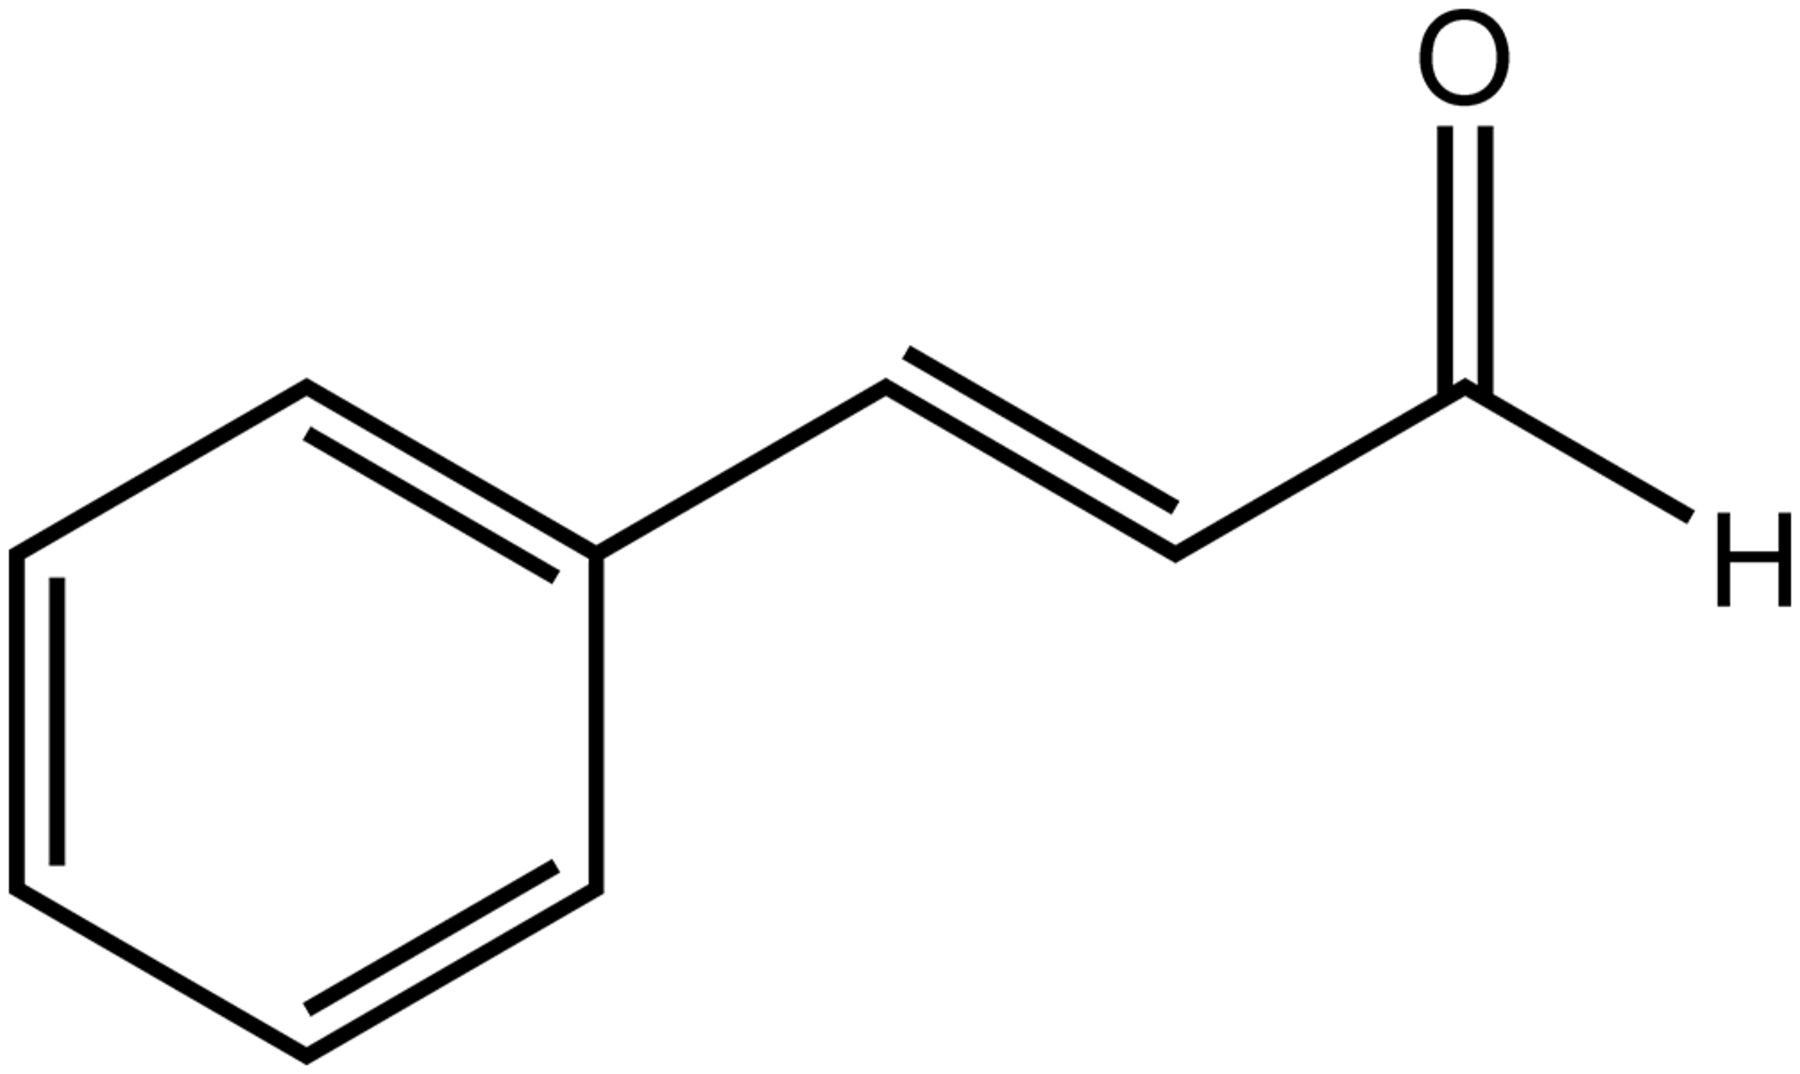 CINNAMIC ALDEHYDE - CAS - 104-55-2 (02150690) - MP Biomedicals